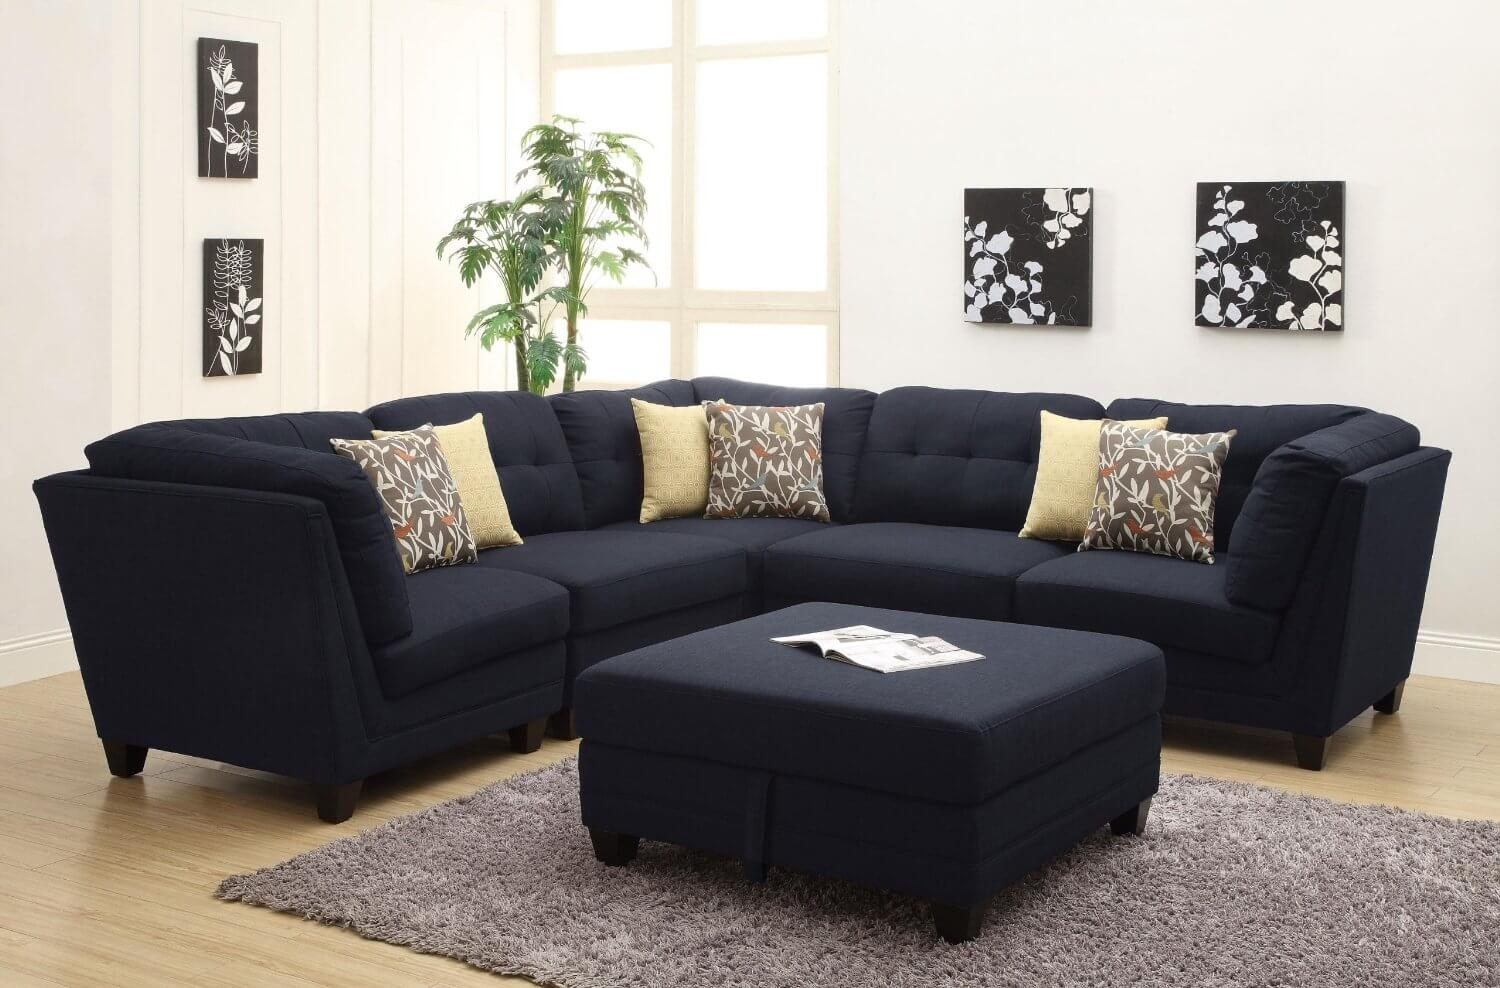 Sofas Center 44 Frightening Quality Sectional Sofas Picture Pertaining To Quality Sectional Sofa (Image 13 of 15)